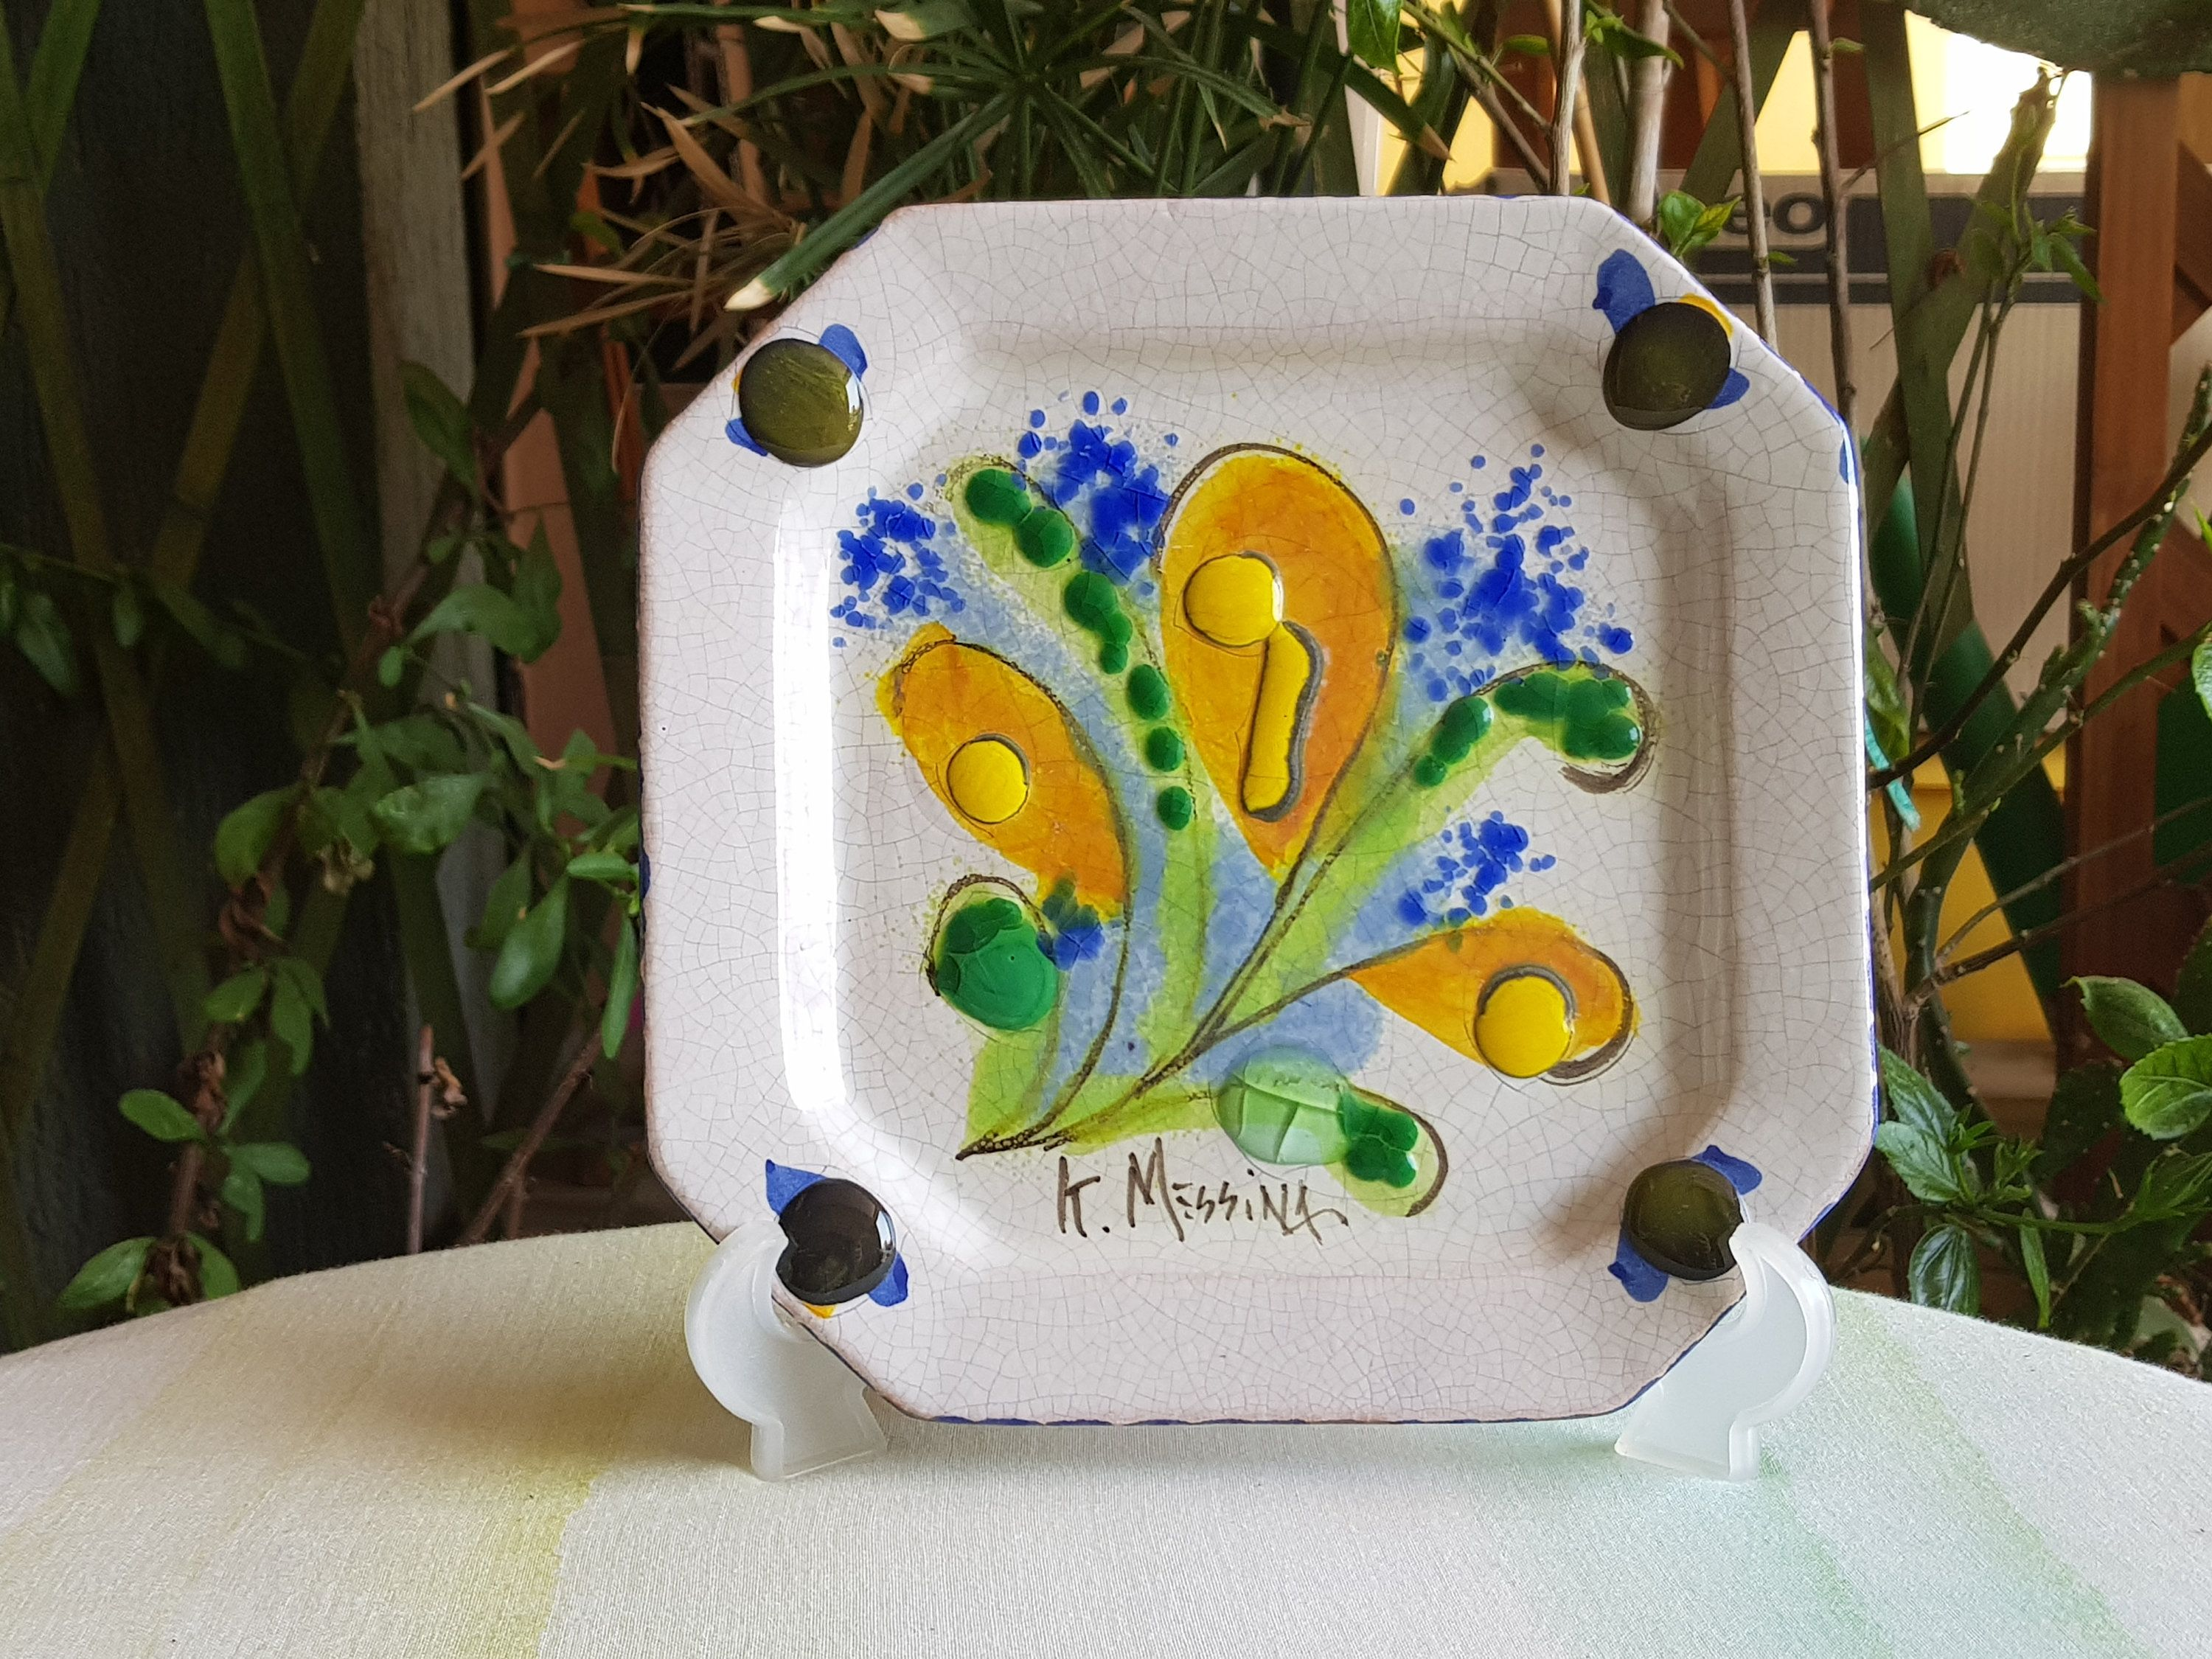 Come Appendere Piatti In Ceramica sicilian ceramic decorative dish ceramic plate to hang